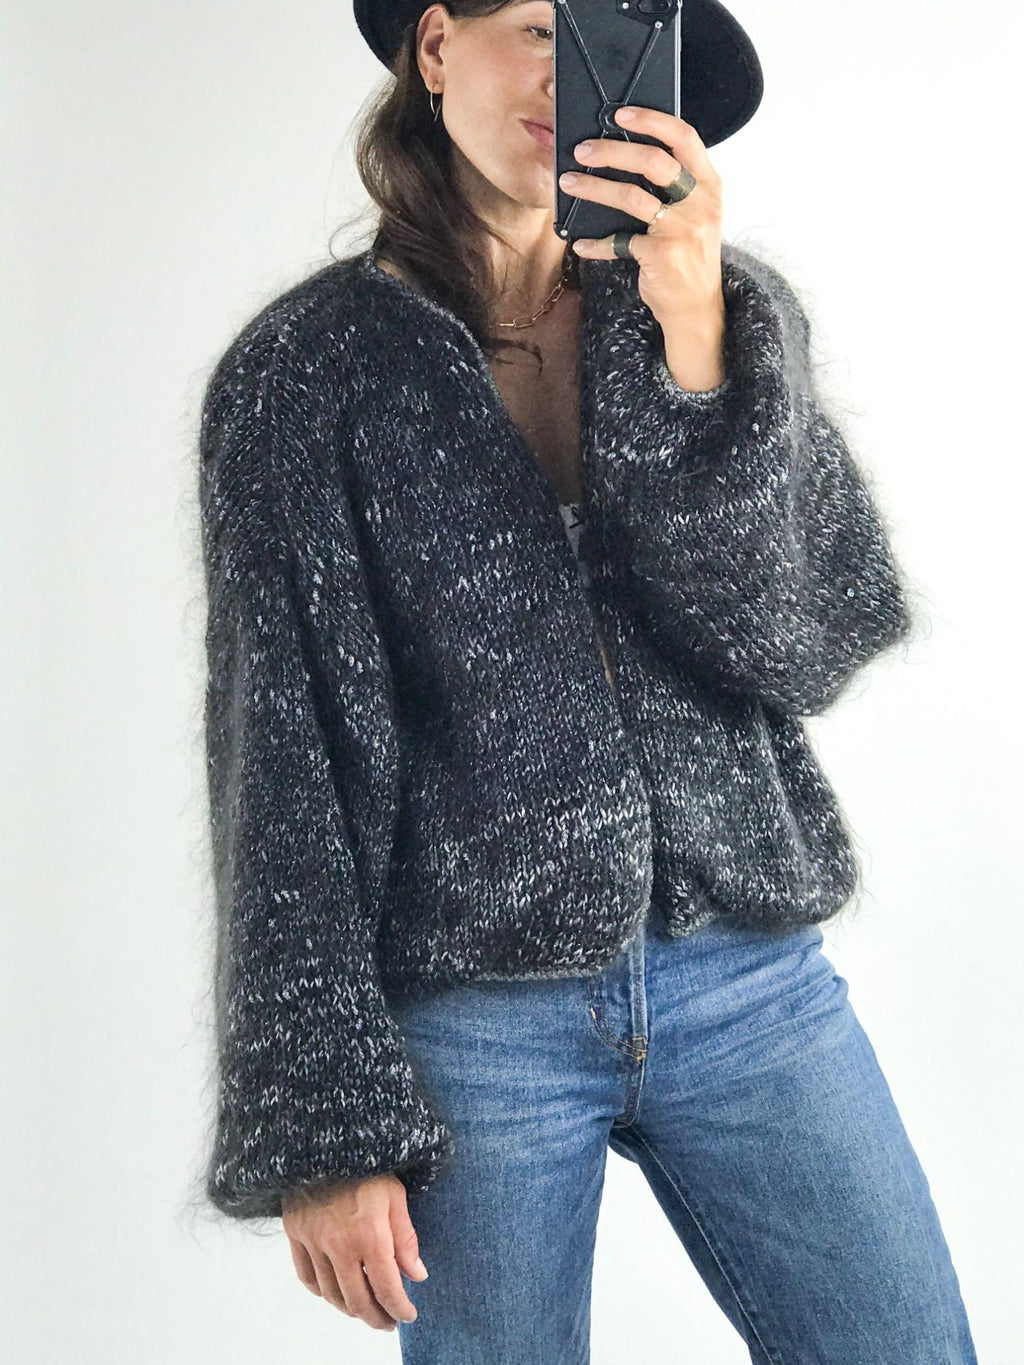 Women's Oversized Slouchy Open Front Wool Cardigan